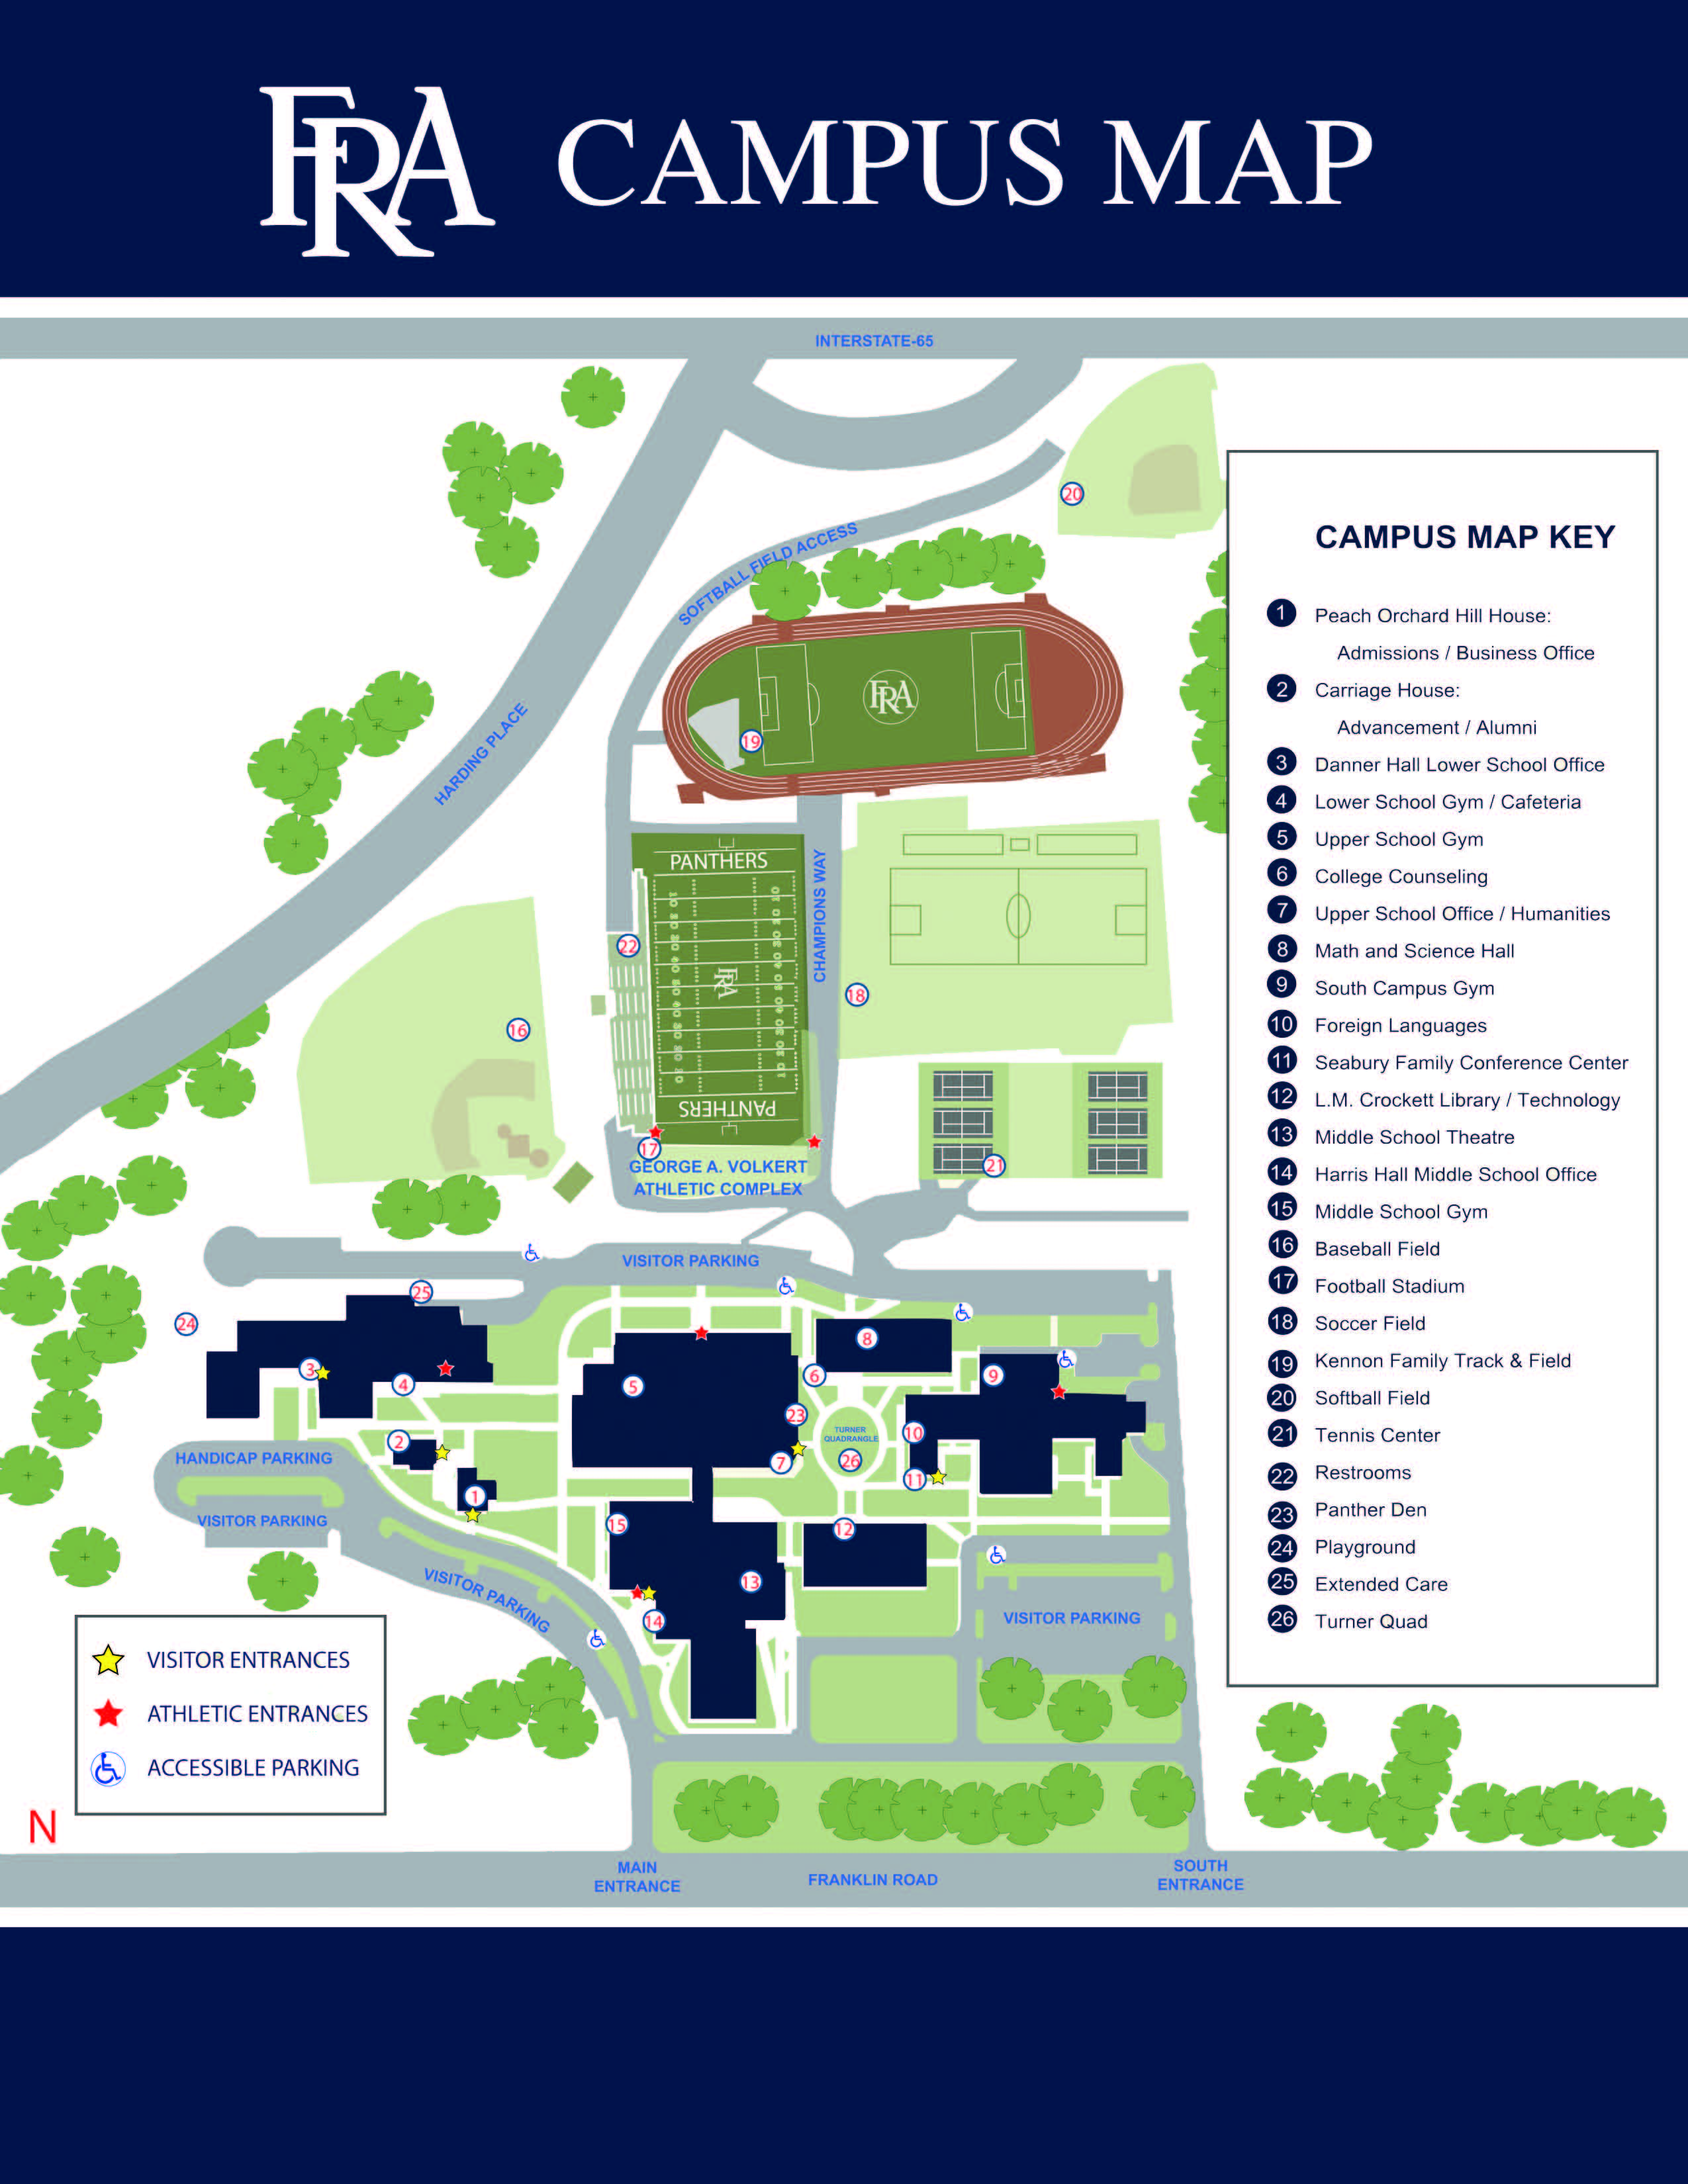 FRA Campus Map